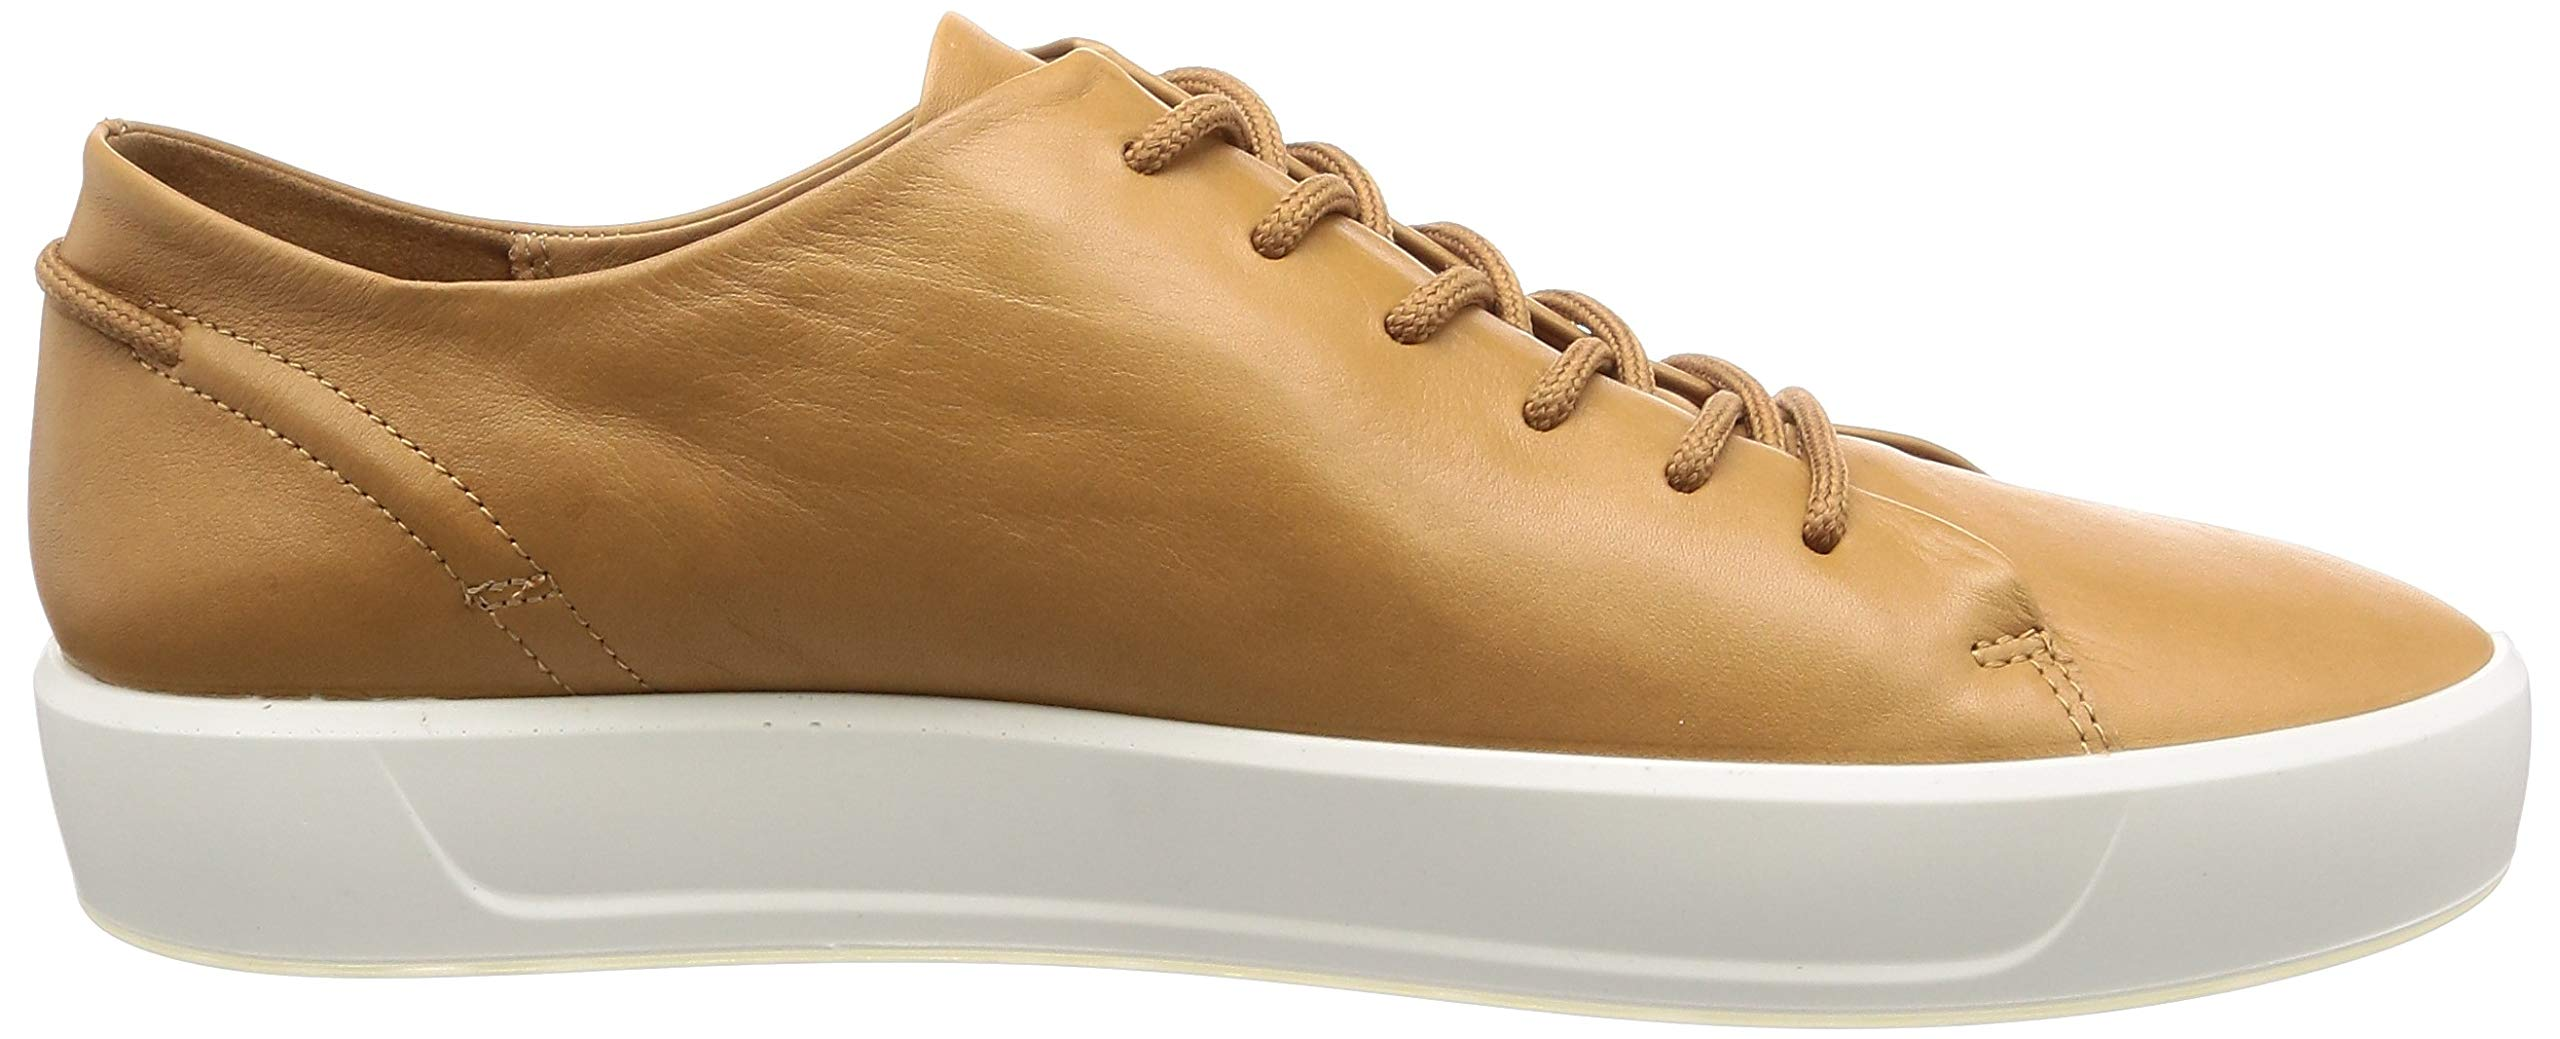 00511729 ECCO Men's Soft 8 Tie Sneaker < Fashion Sneakers < Clothing, Shoes ...